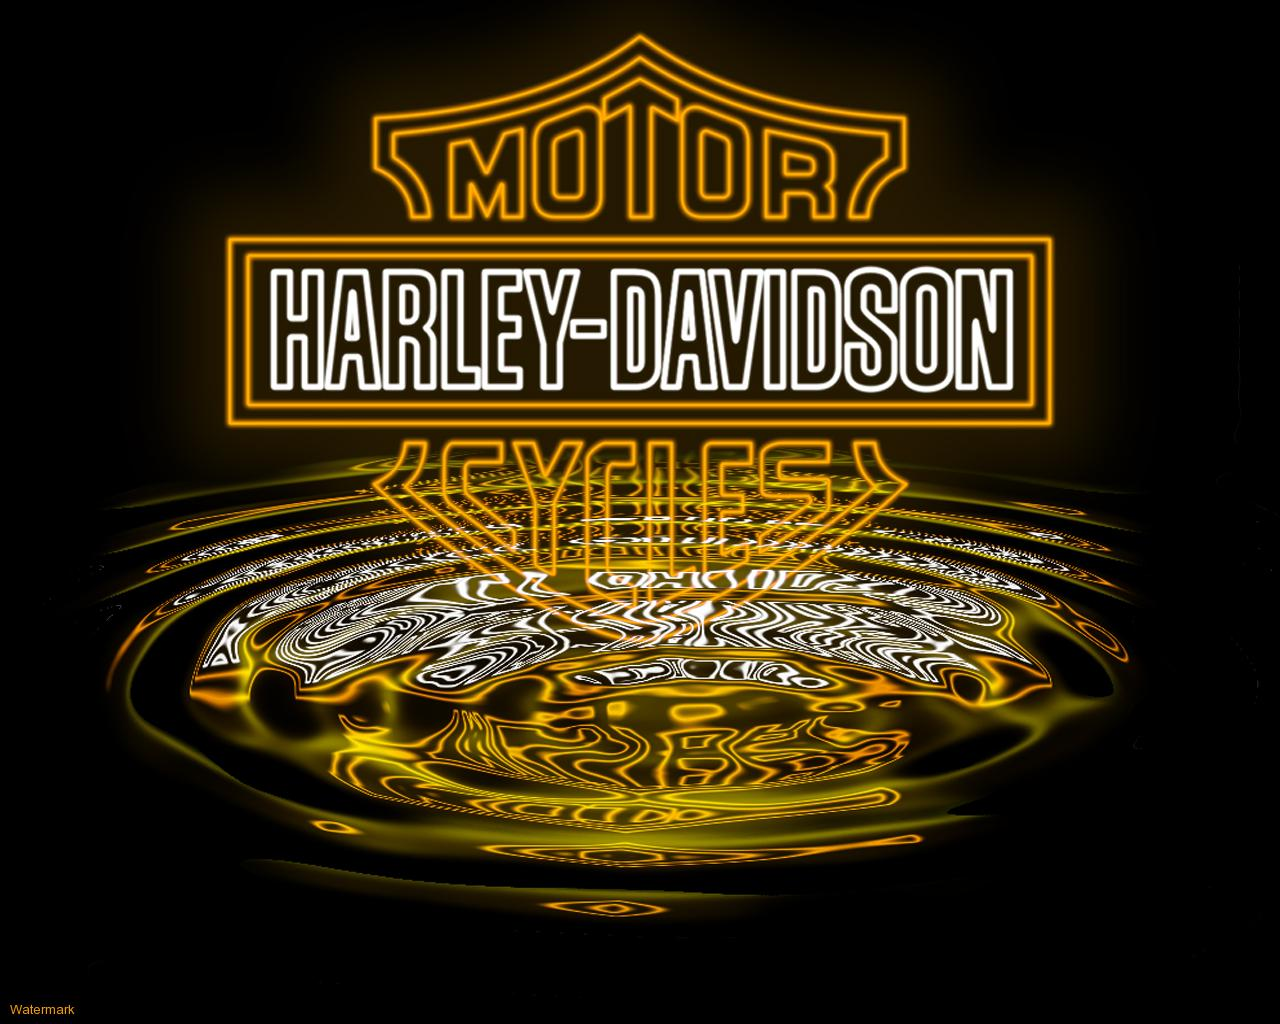 Harley Davidson Logo Wallpaper 6933 Hd Wallpapers in Logos   Imagesci 1280x1024